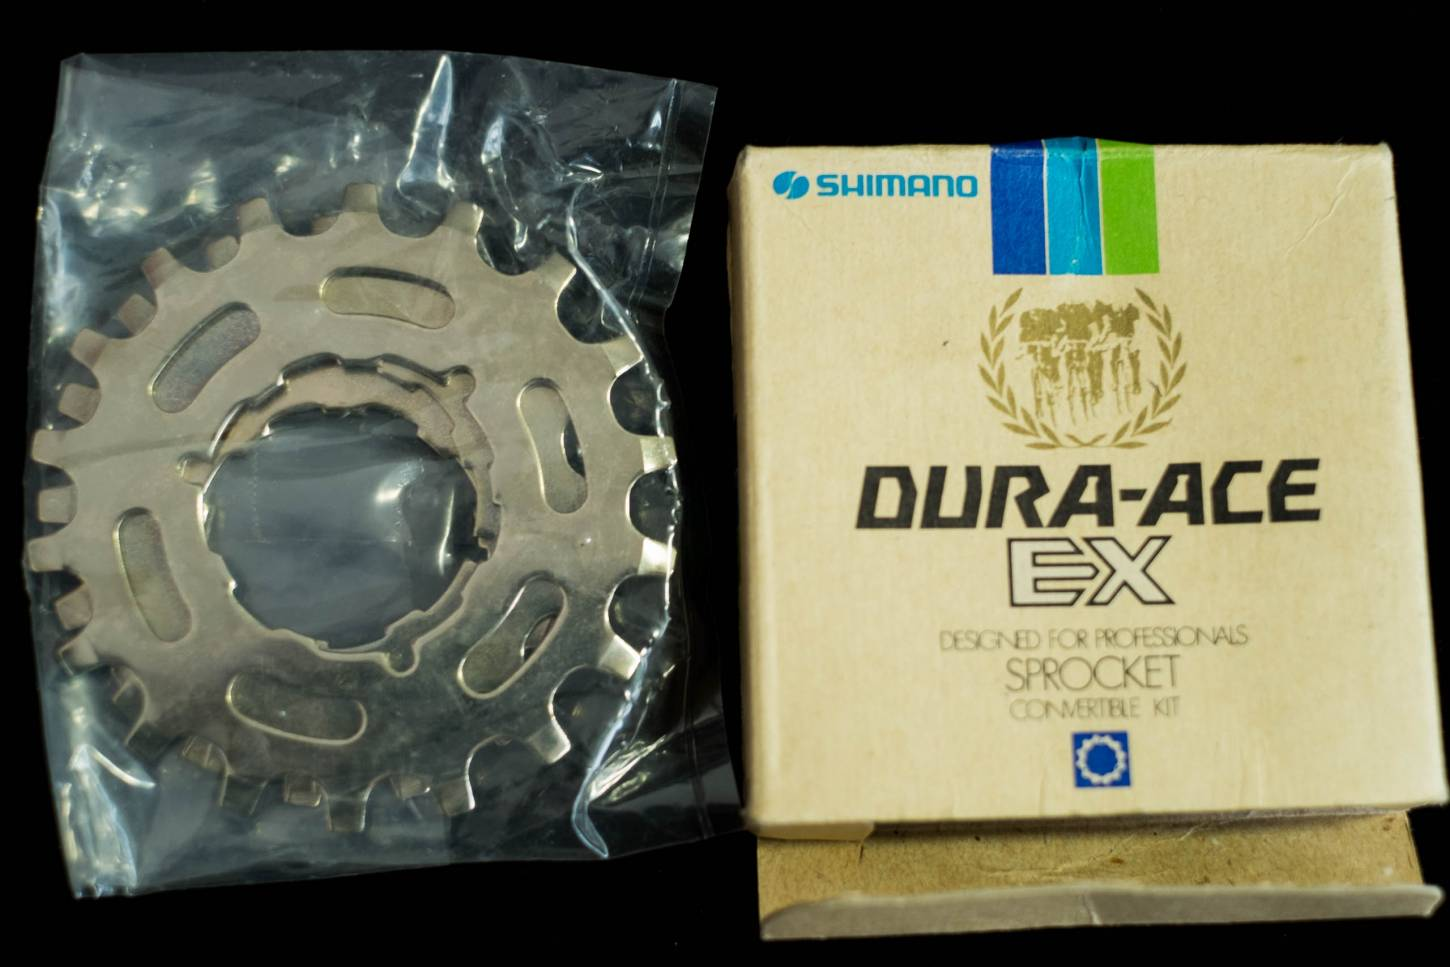 NOS Shimano Dura Ace EX Ritzel Kit Sprocket Convertible Kit Gold 14 + 16 + 18 T Vintage